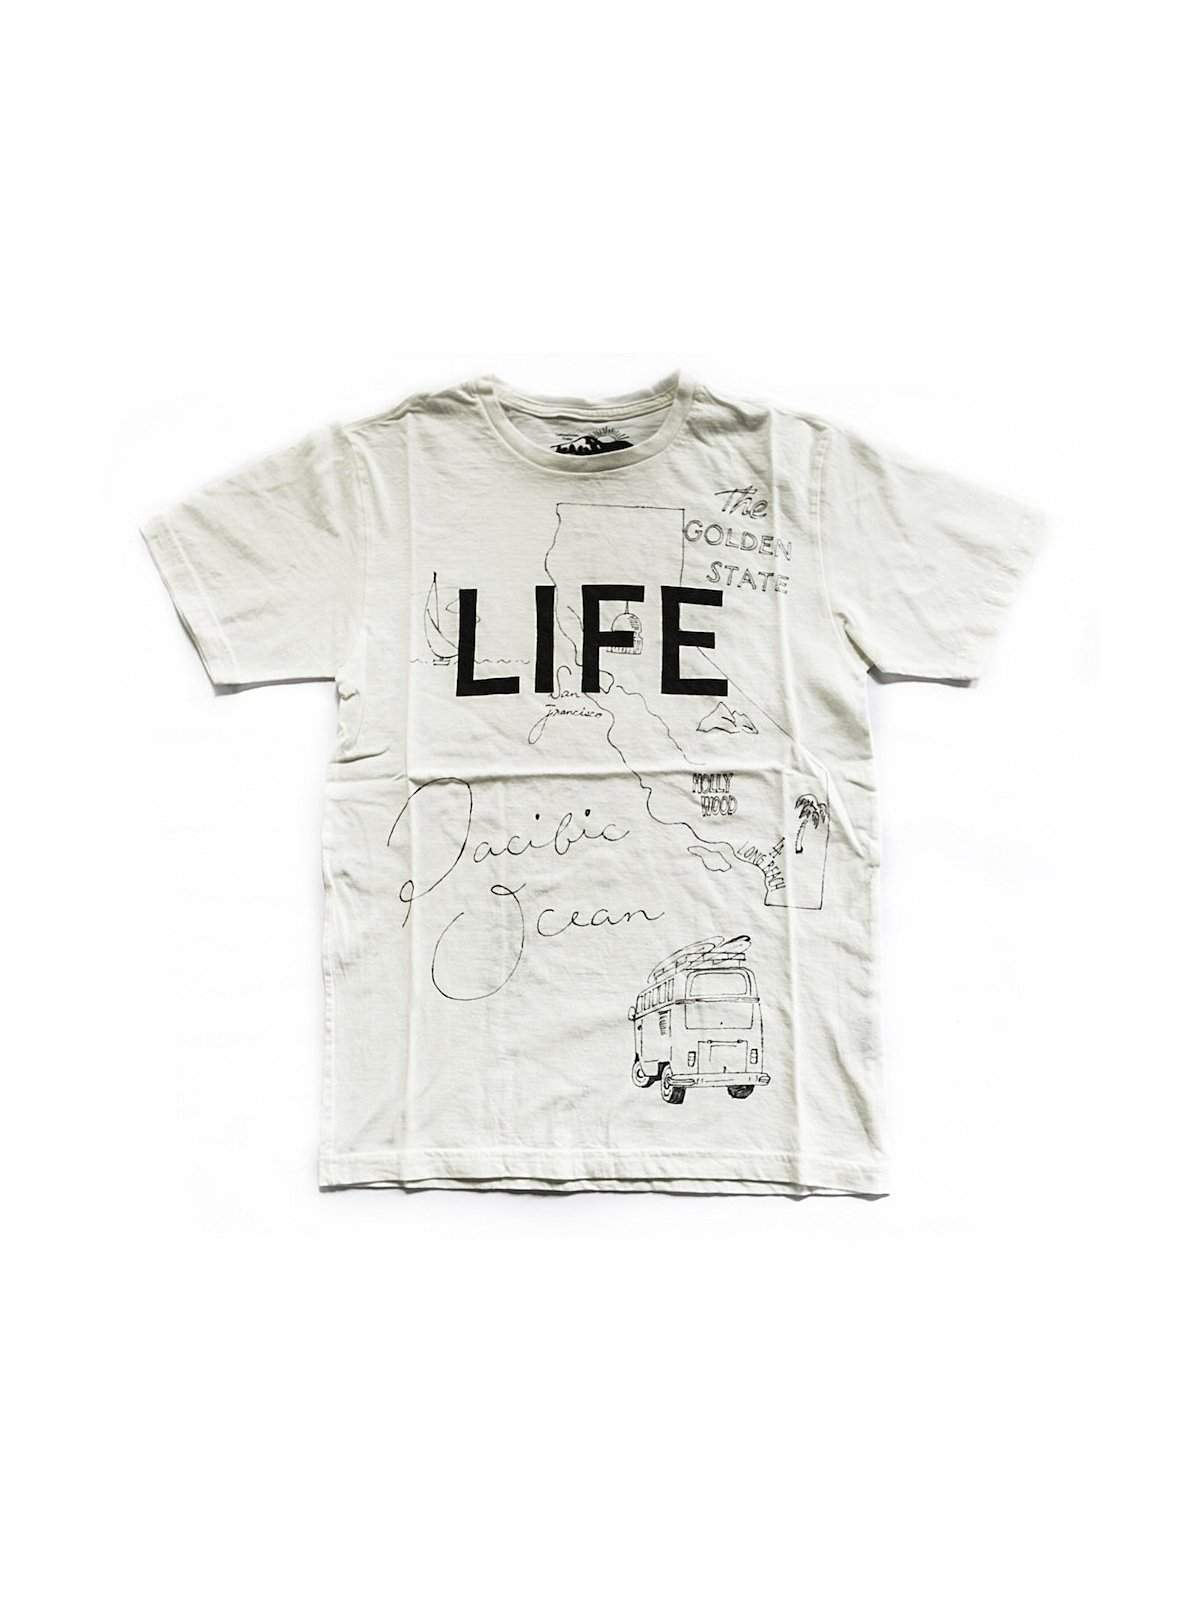 Free Rage Life Hand Paint Tee White - MORE by Morello Indonesia